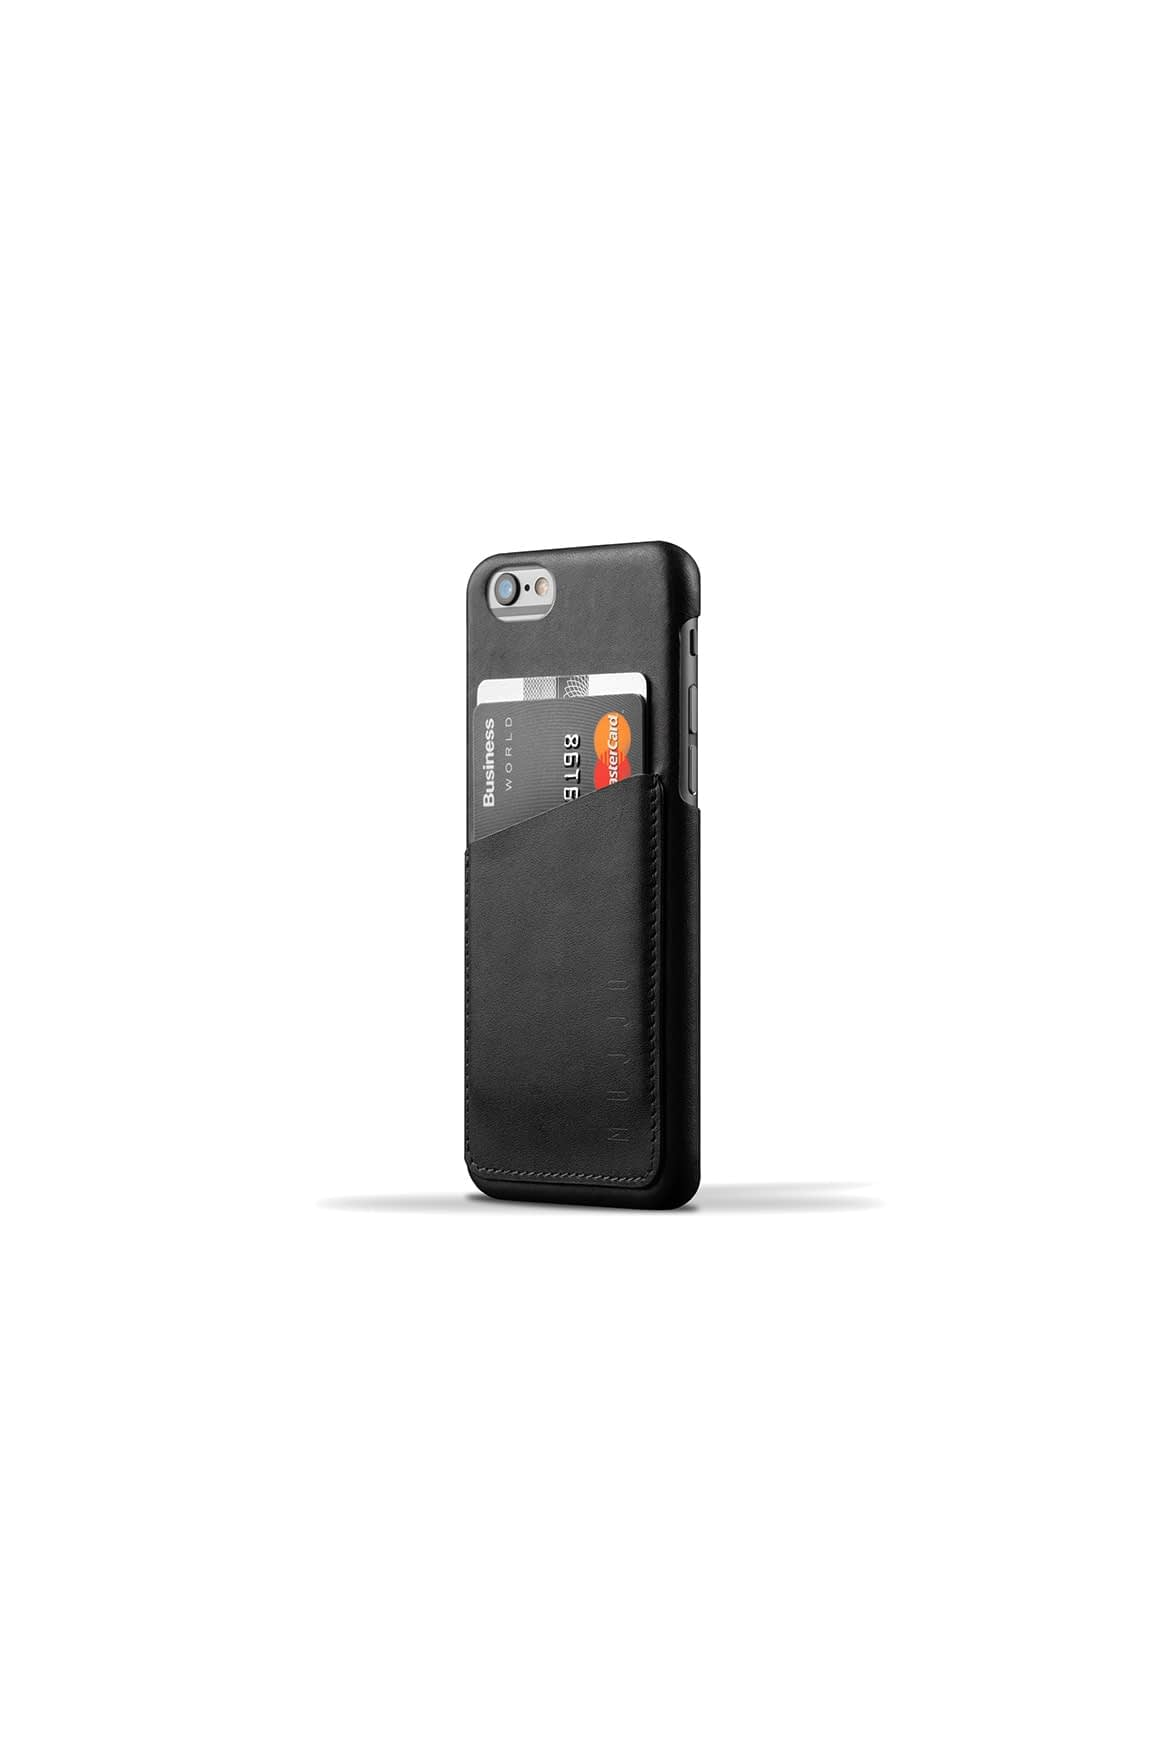 Leather Wallet Case for iPhone 6 Black 003